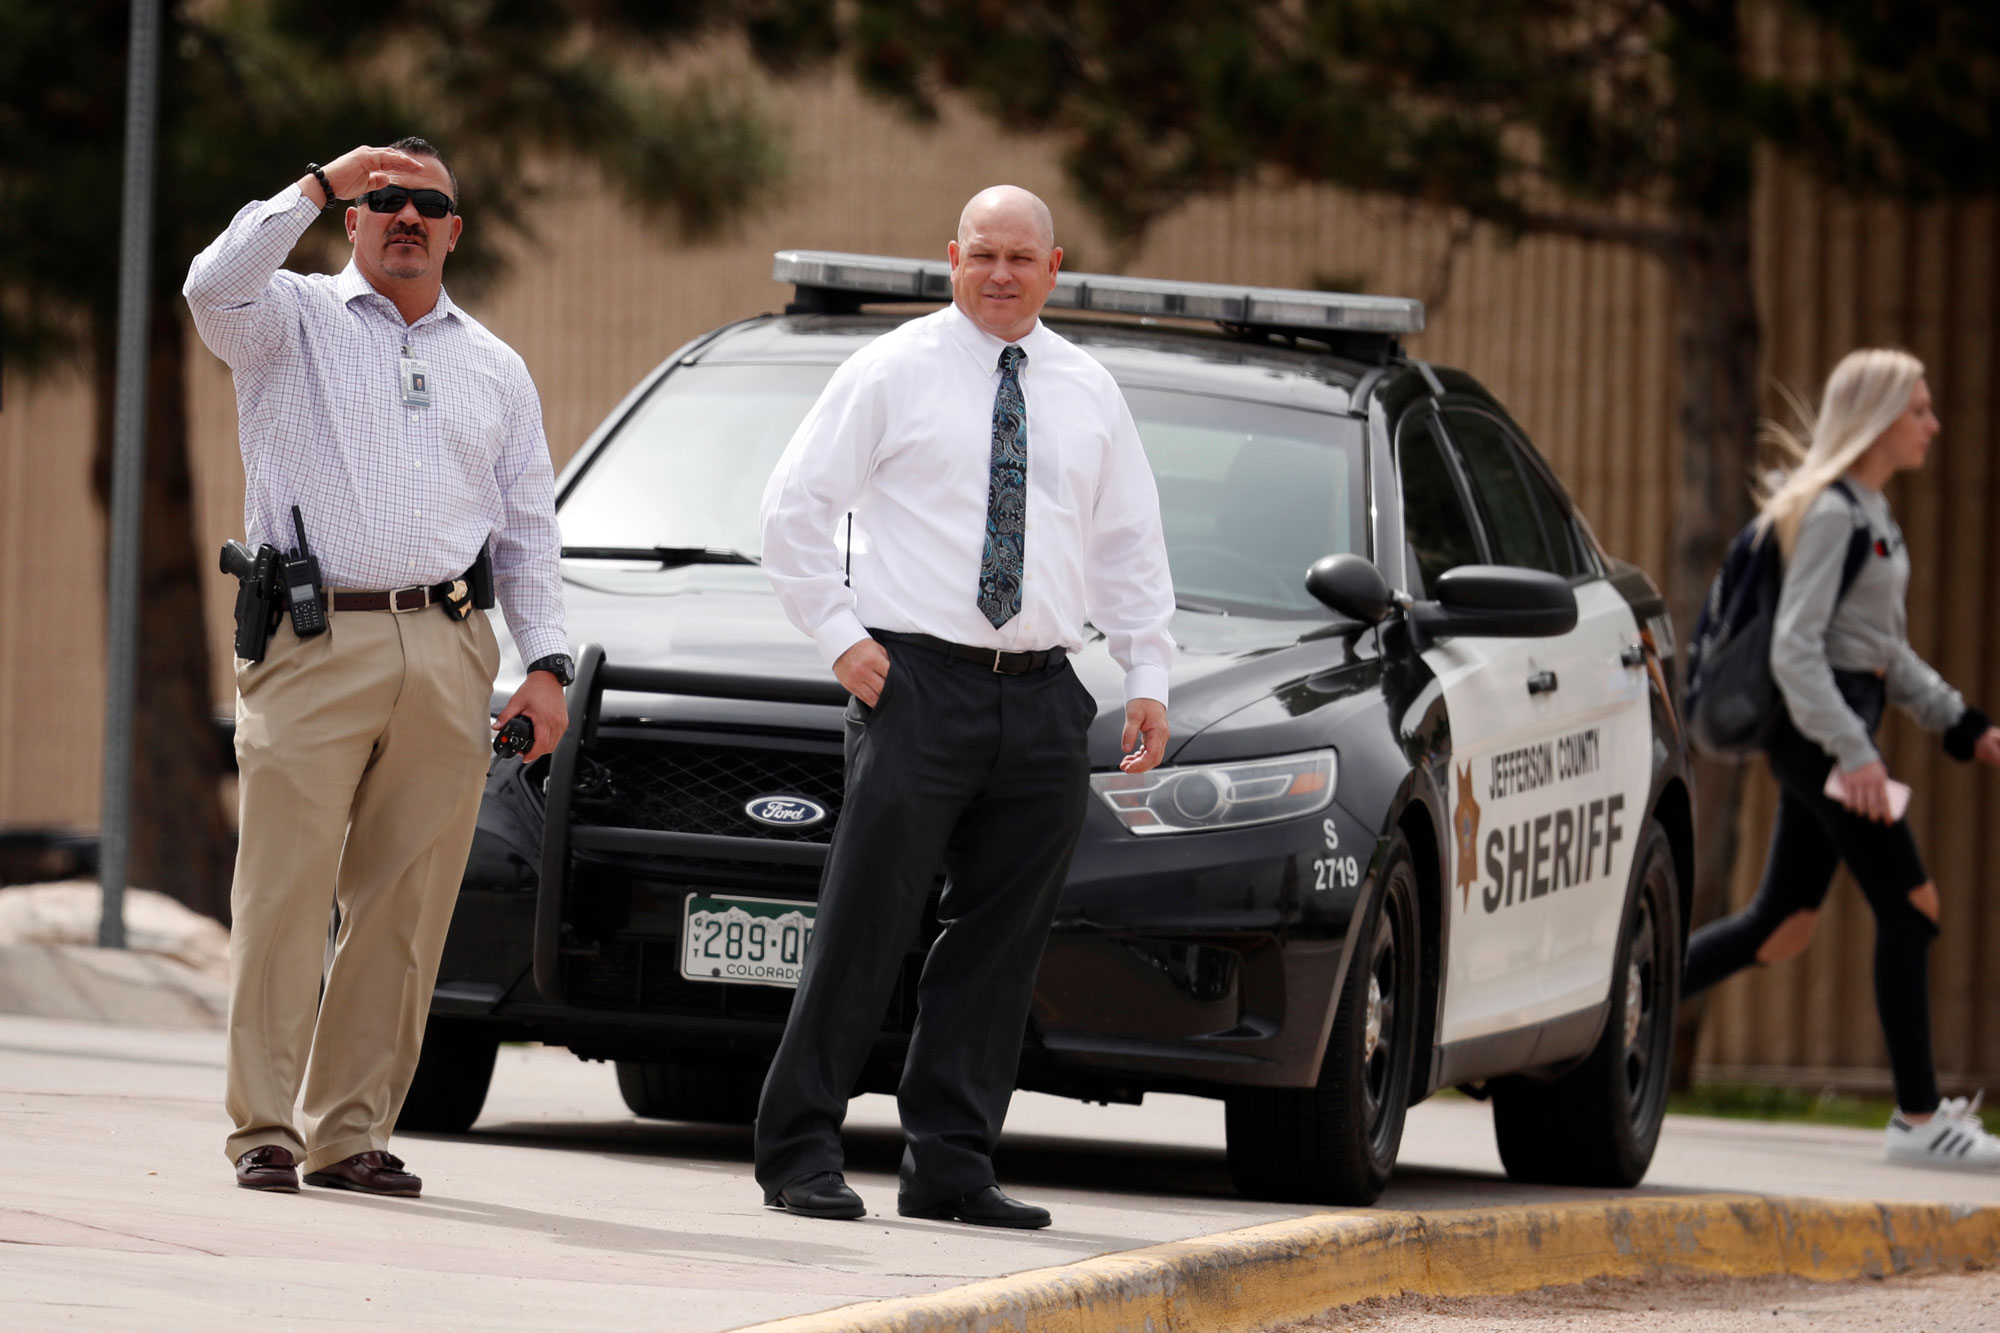 <p>Columbine High School principal Scott Christy, right, joins an officer in watching as students leave the school late Tuesday, April 16, 2019, in Littleton, Colo. Following a lockoutat Columbine High School and other Denver area schools, authorities say they are looking for a woman suspected of making threats.</p>